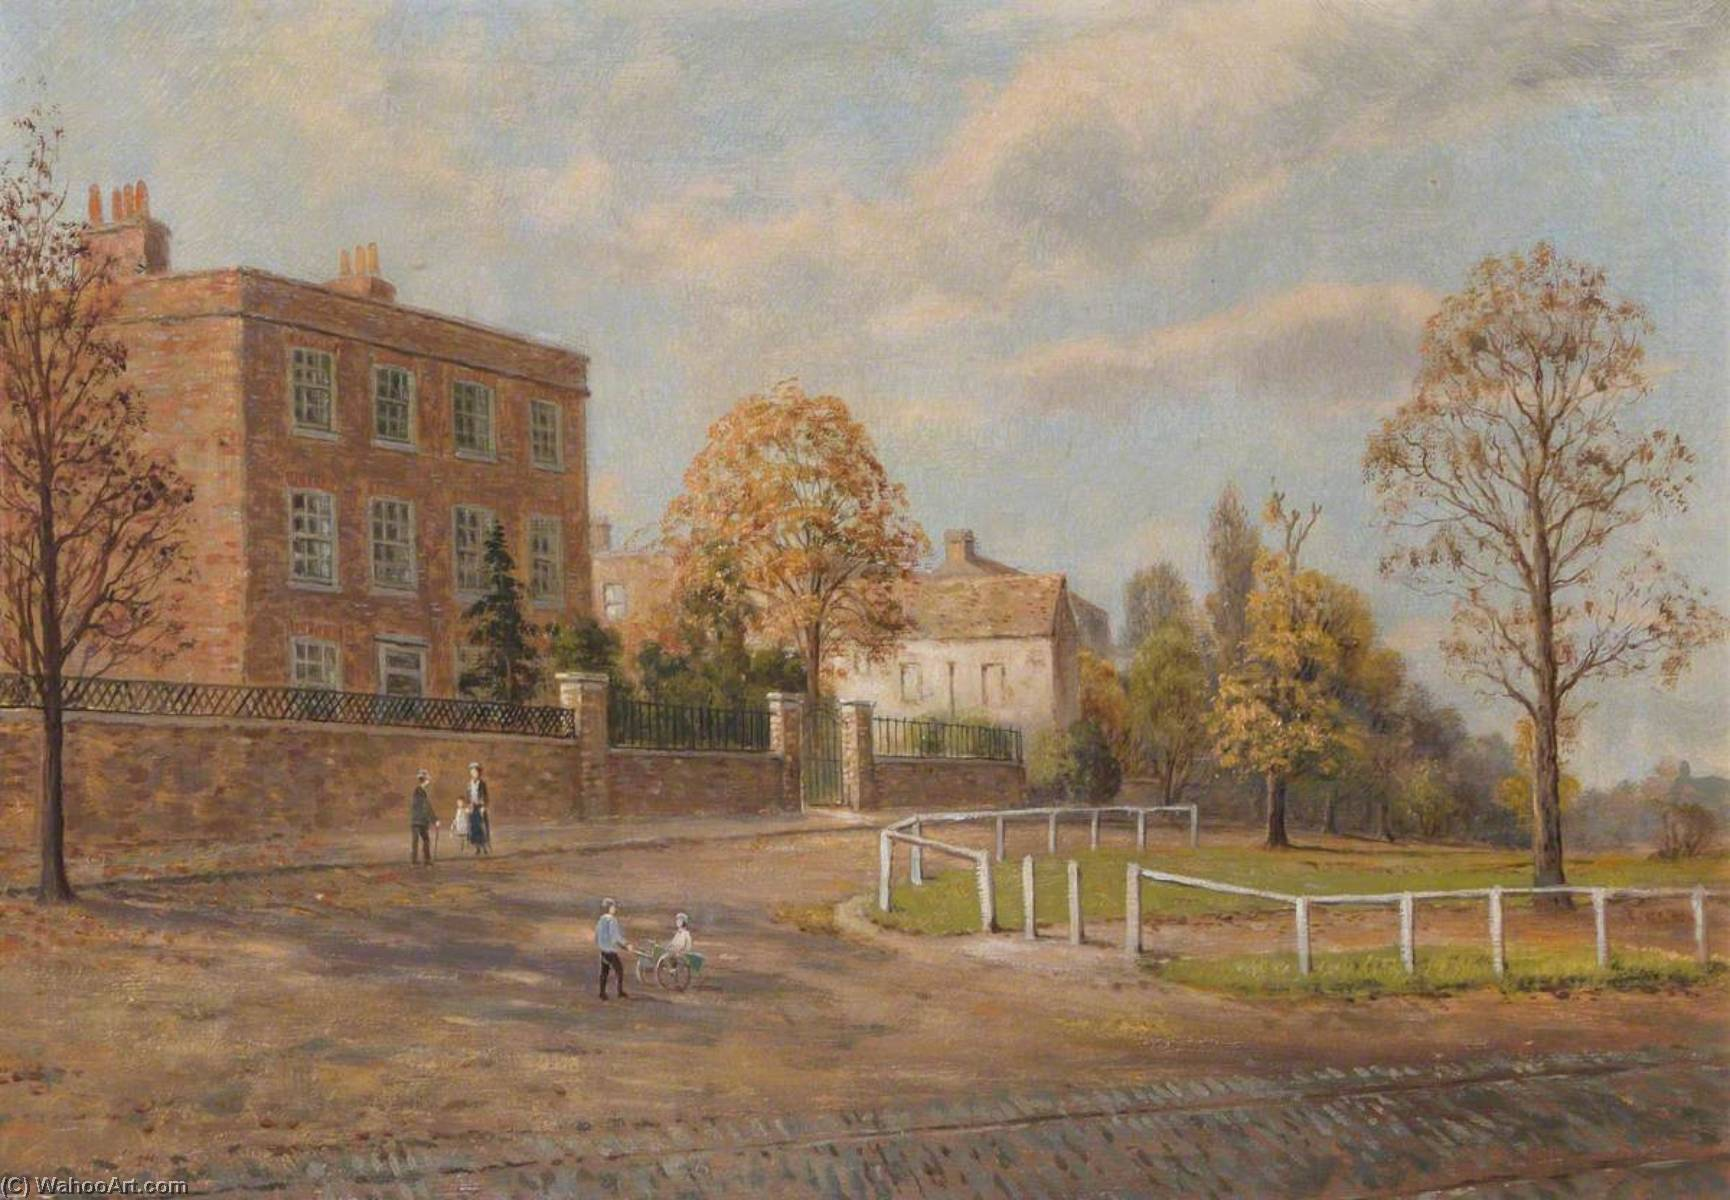 Eagle House, Tottenham Green, Oil On Canvas by John Bonny